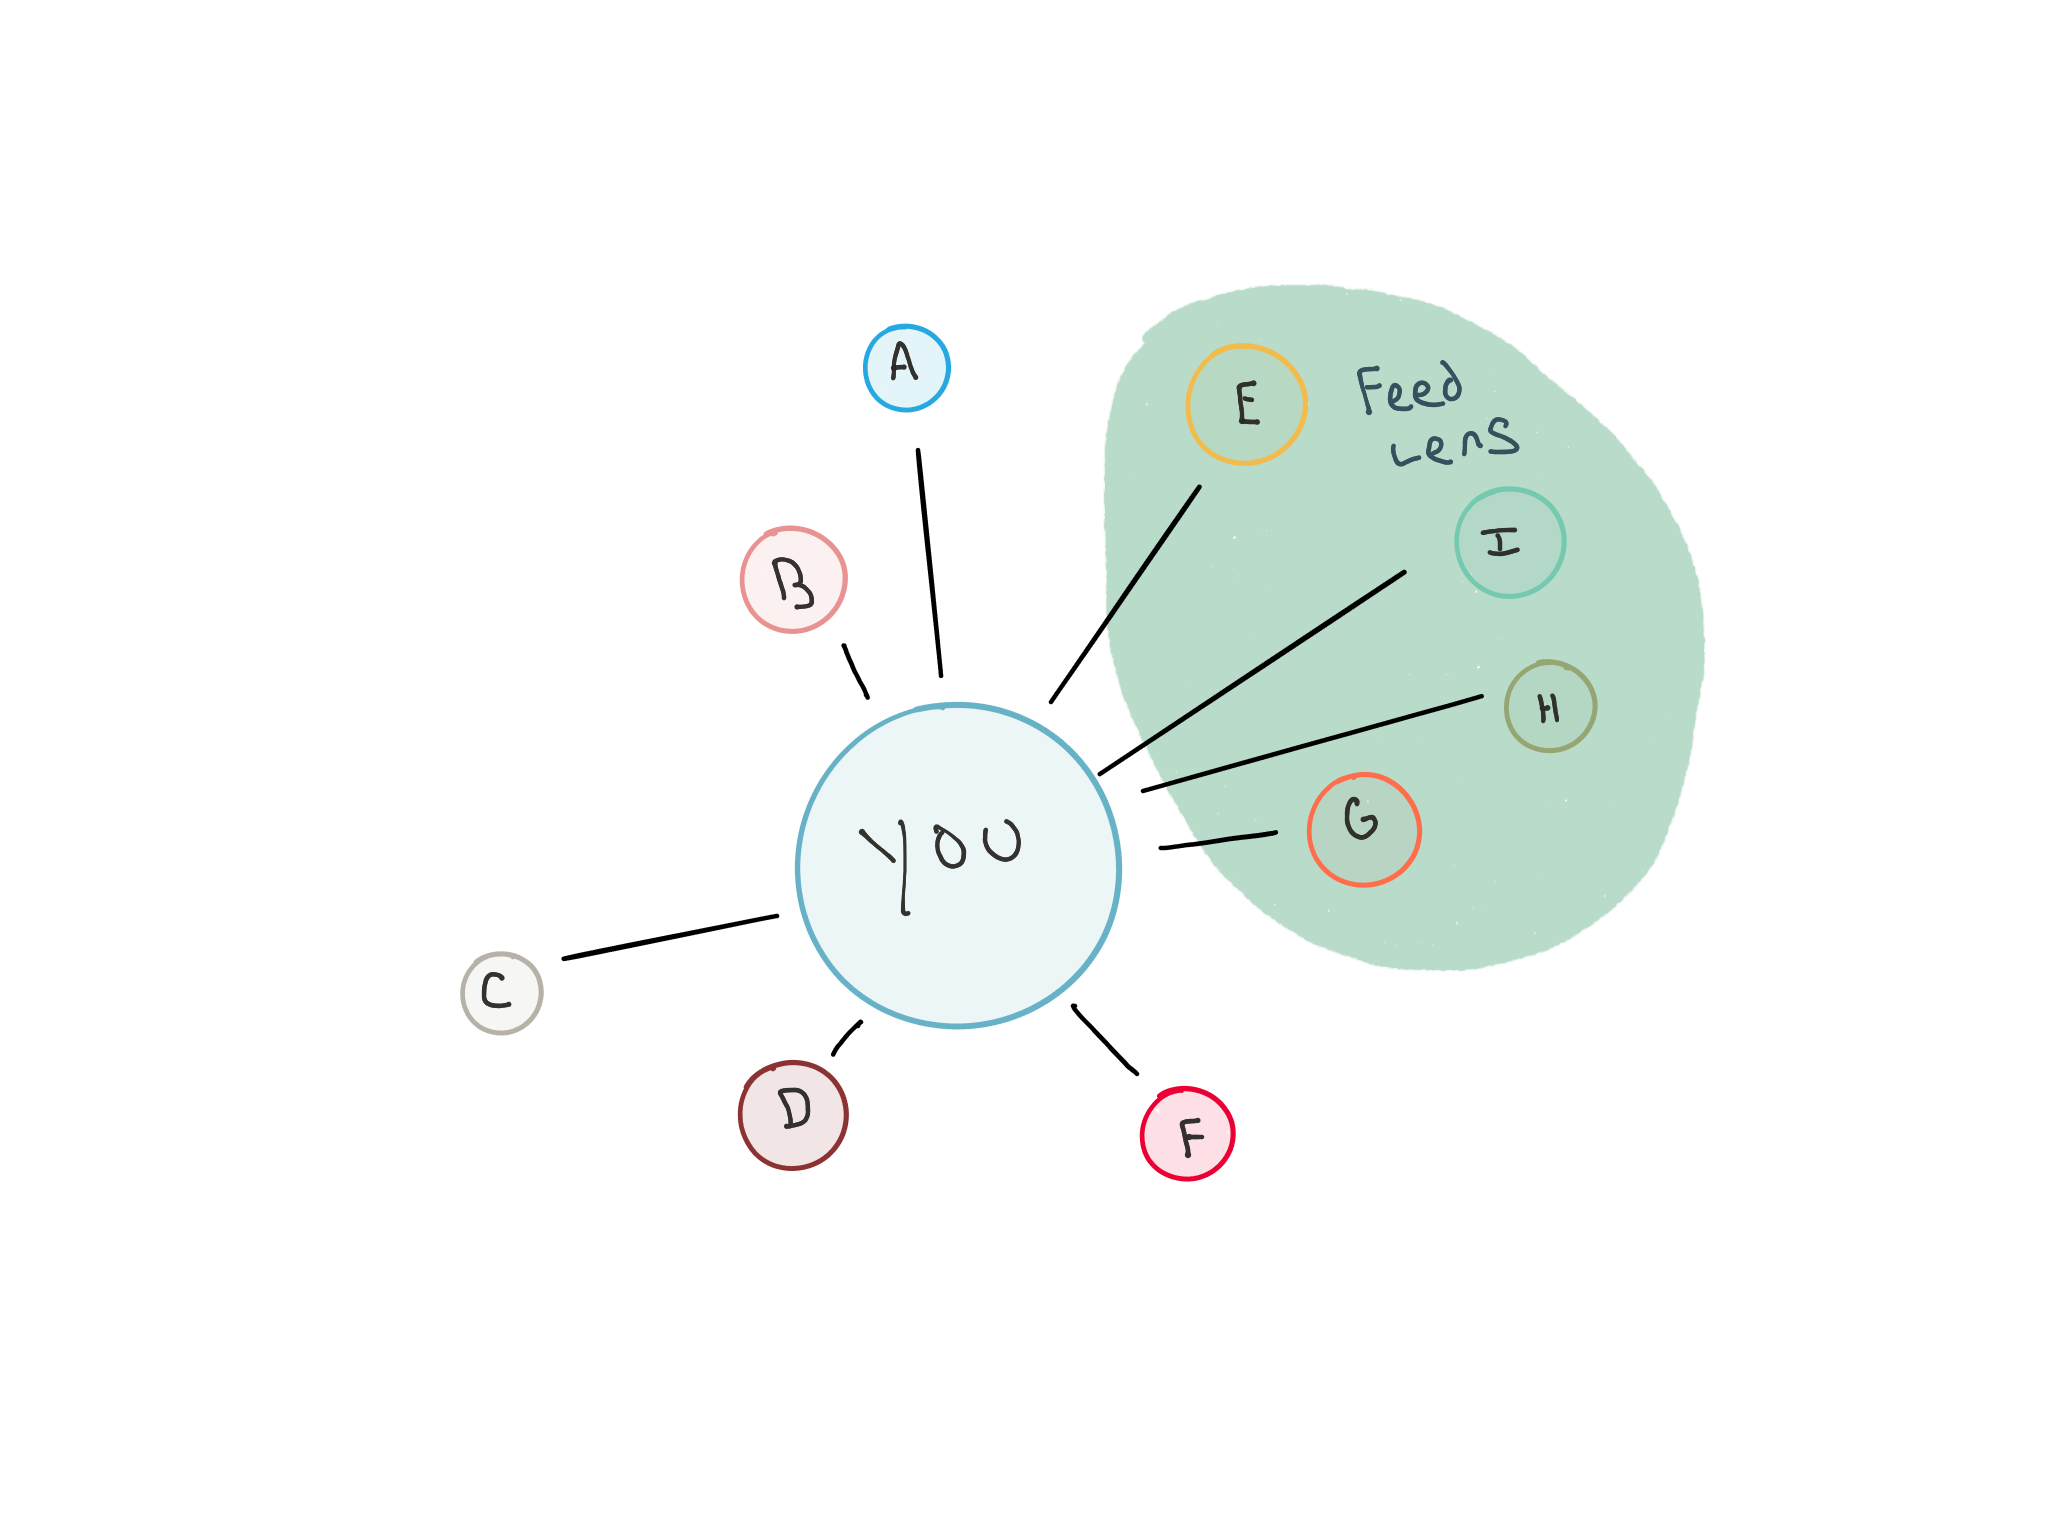 Illustration of feeds creating a lens on a social graph